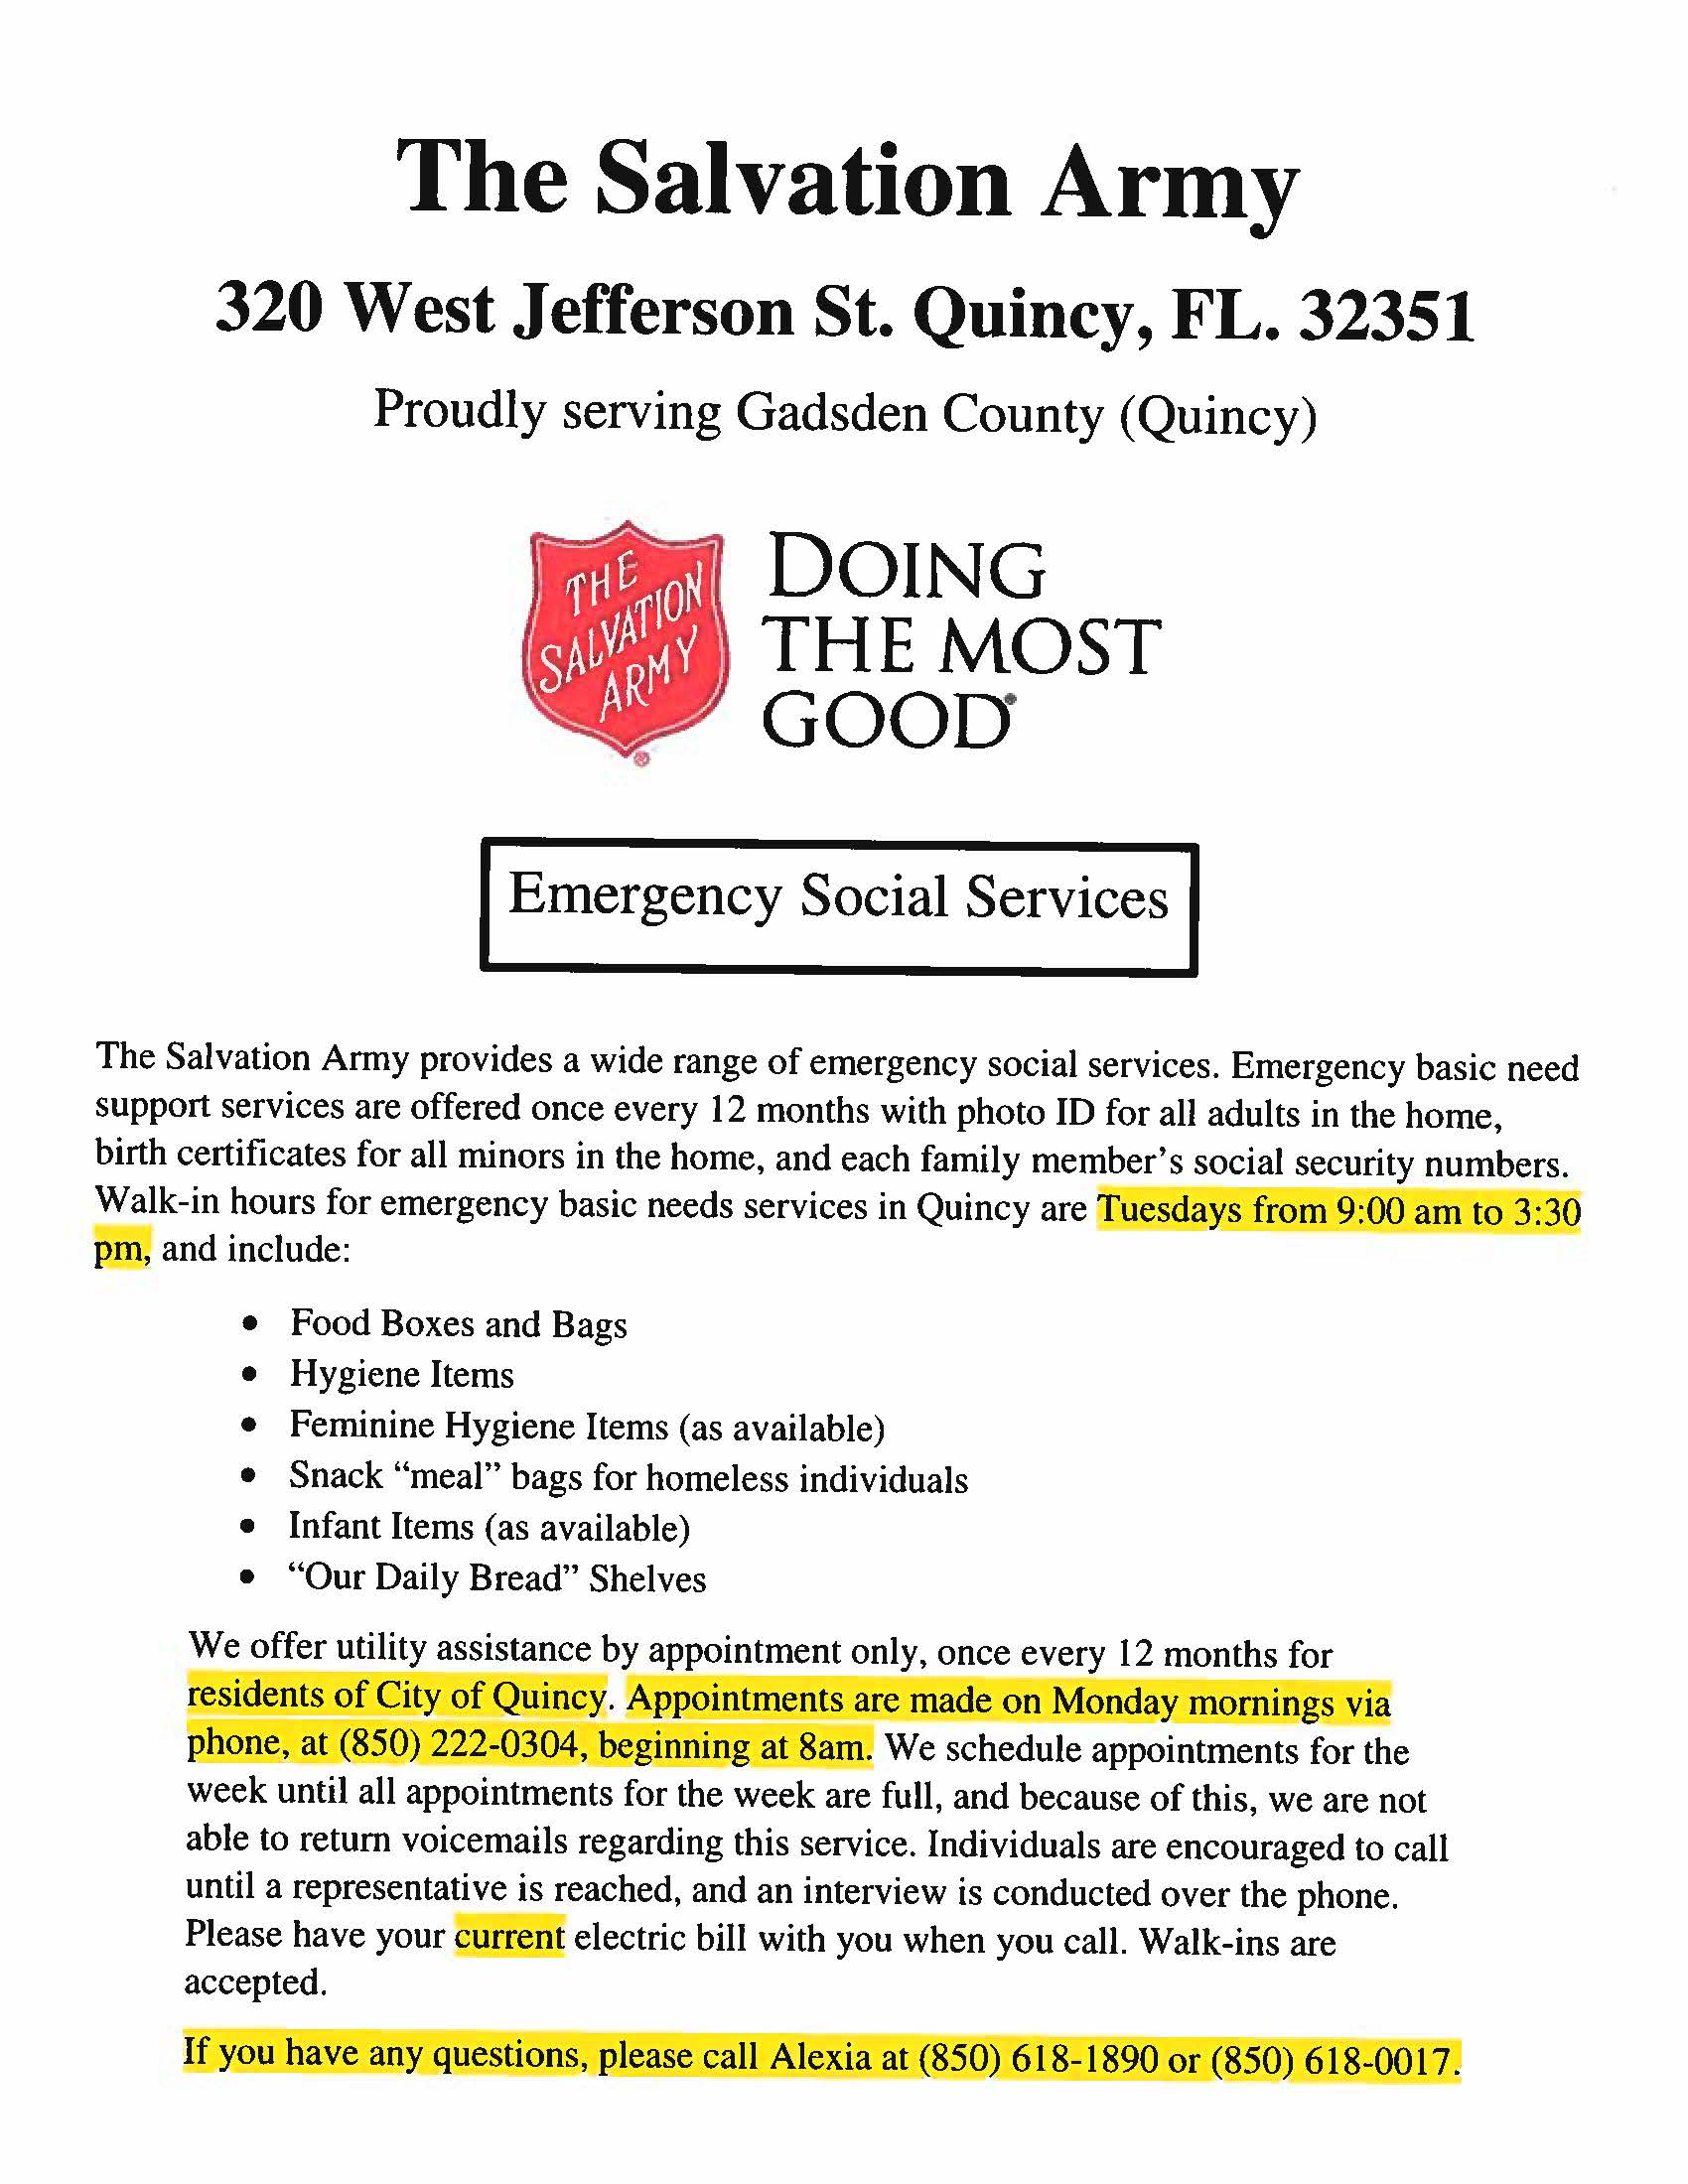 Salvation Army Flyer